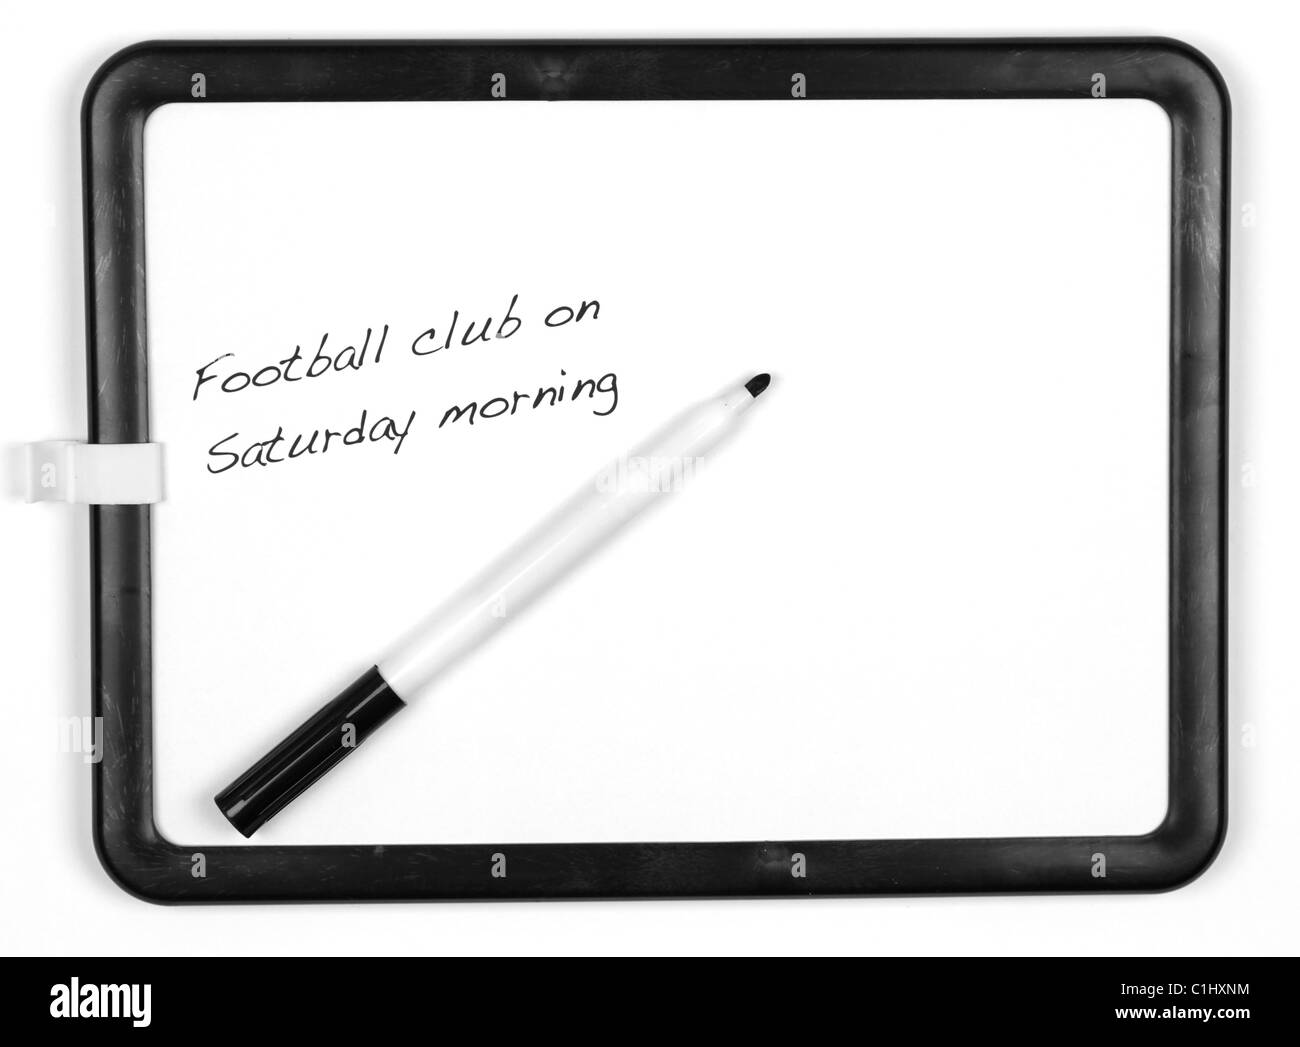 White message board and black marker pen with the message 'Football club on Saturday morning' - white background. - Stock Image